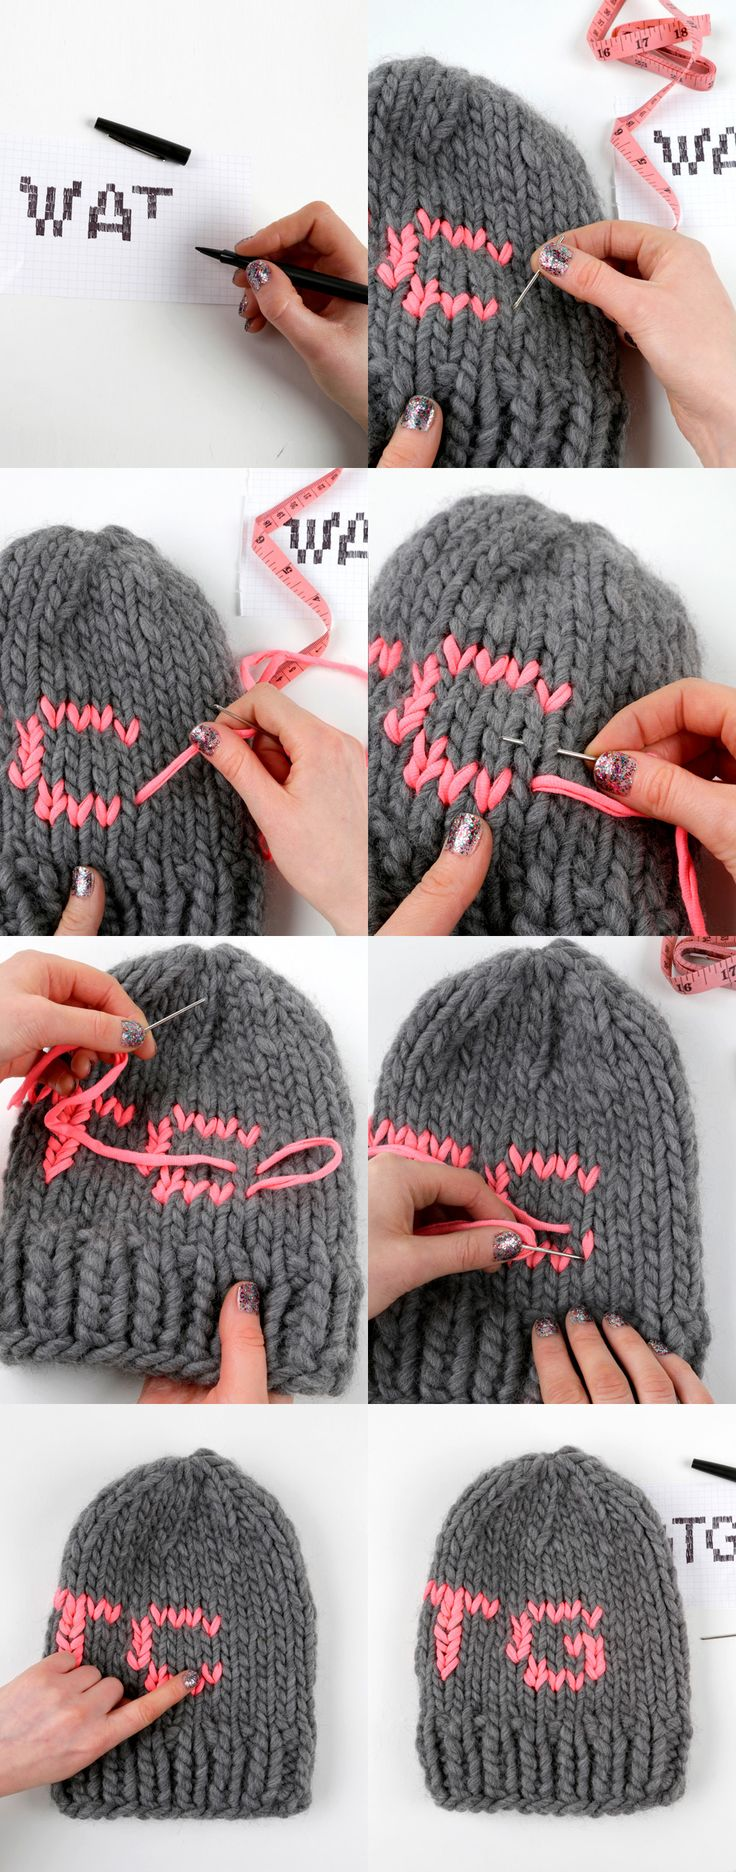 HOW TO MAKE THE DUPLICATE STITCH Gangstas check our how to guide, our mission is…